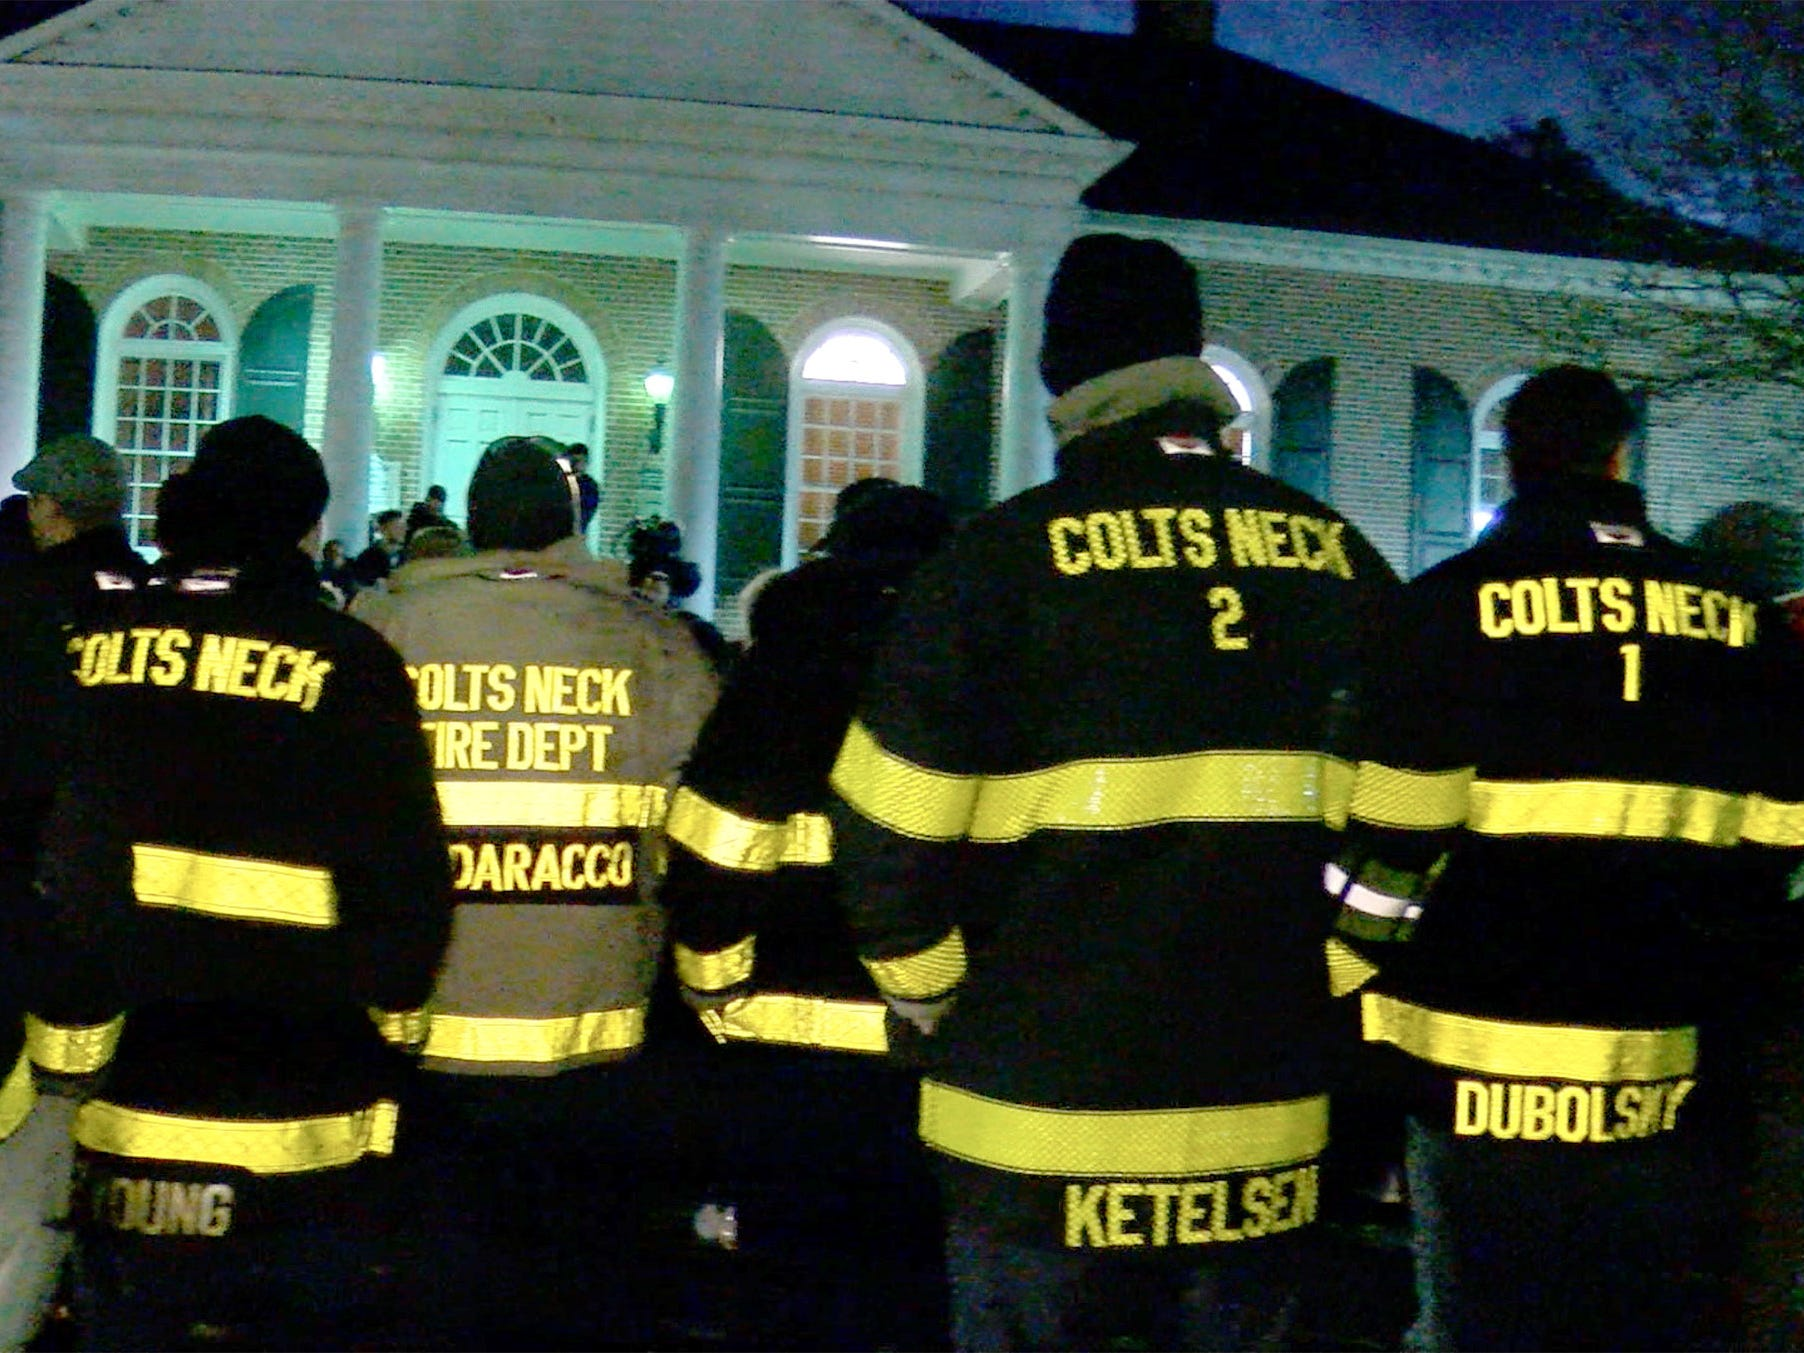 Colts Neck firefighters gather outside the Colts Neck Town Hall Wednesday night, November 21, 2018, for a vigil to remember the Caneiro family killed in a house fire the previous day.